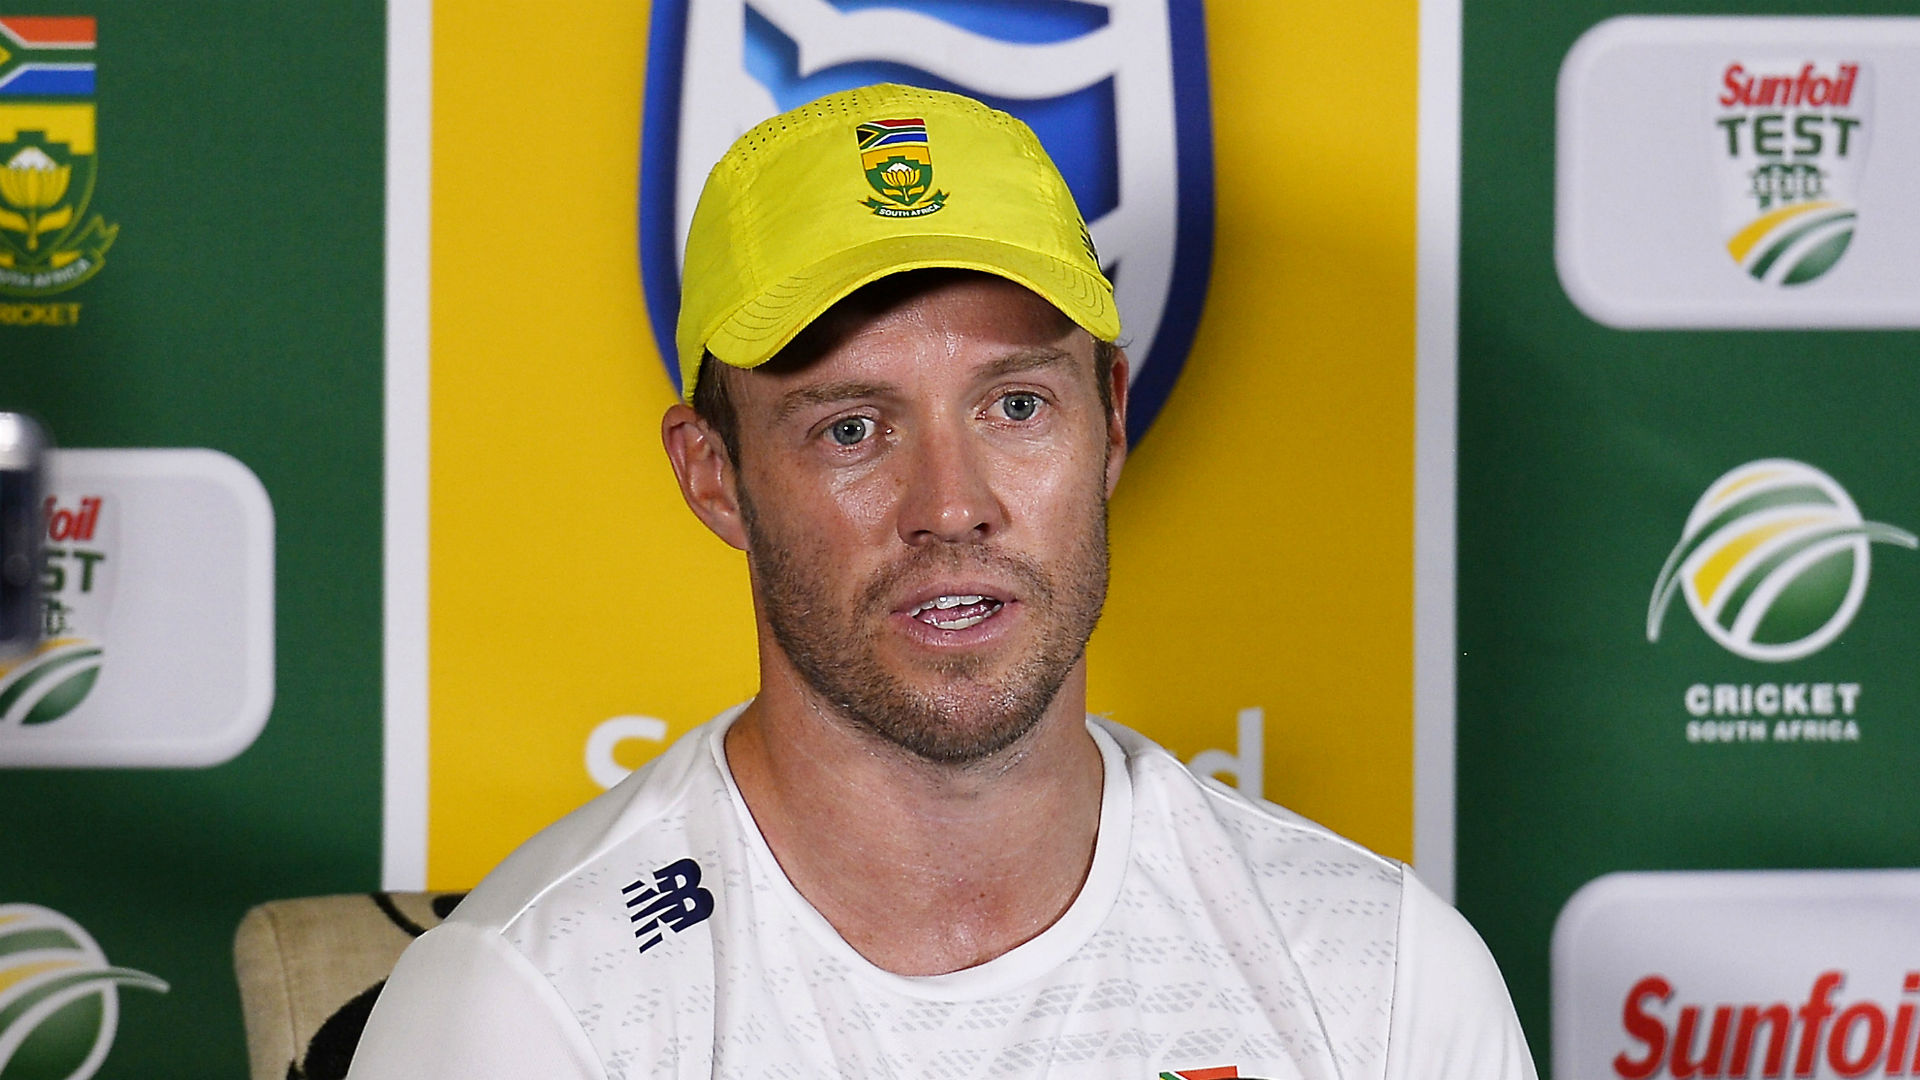 De Villiers: Reports suggesting I've been asked to lead Proteas are just not true